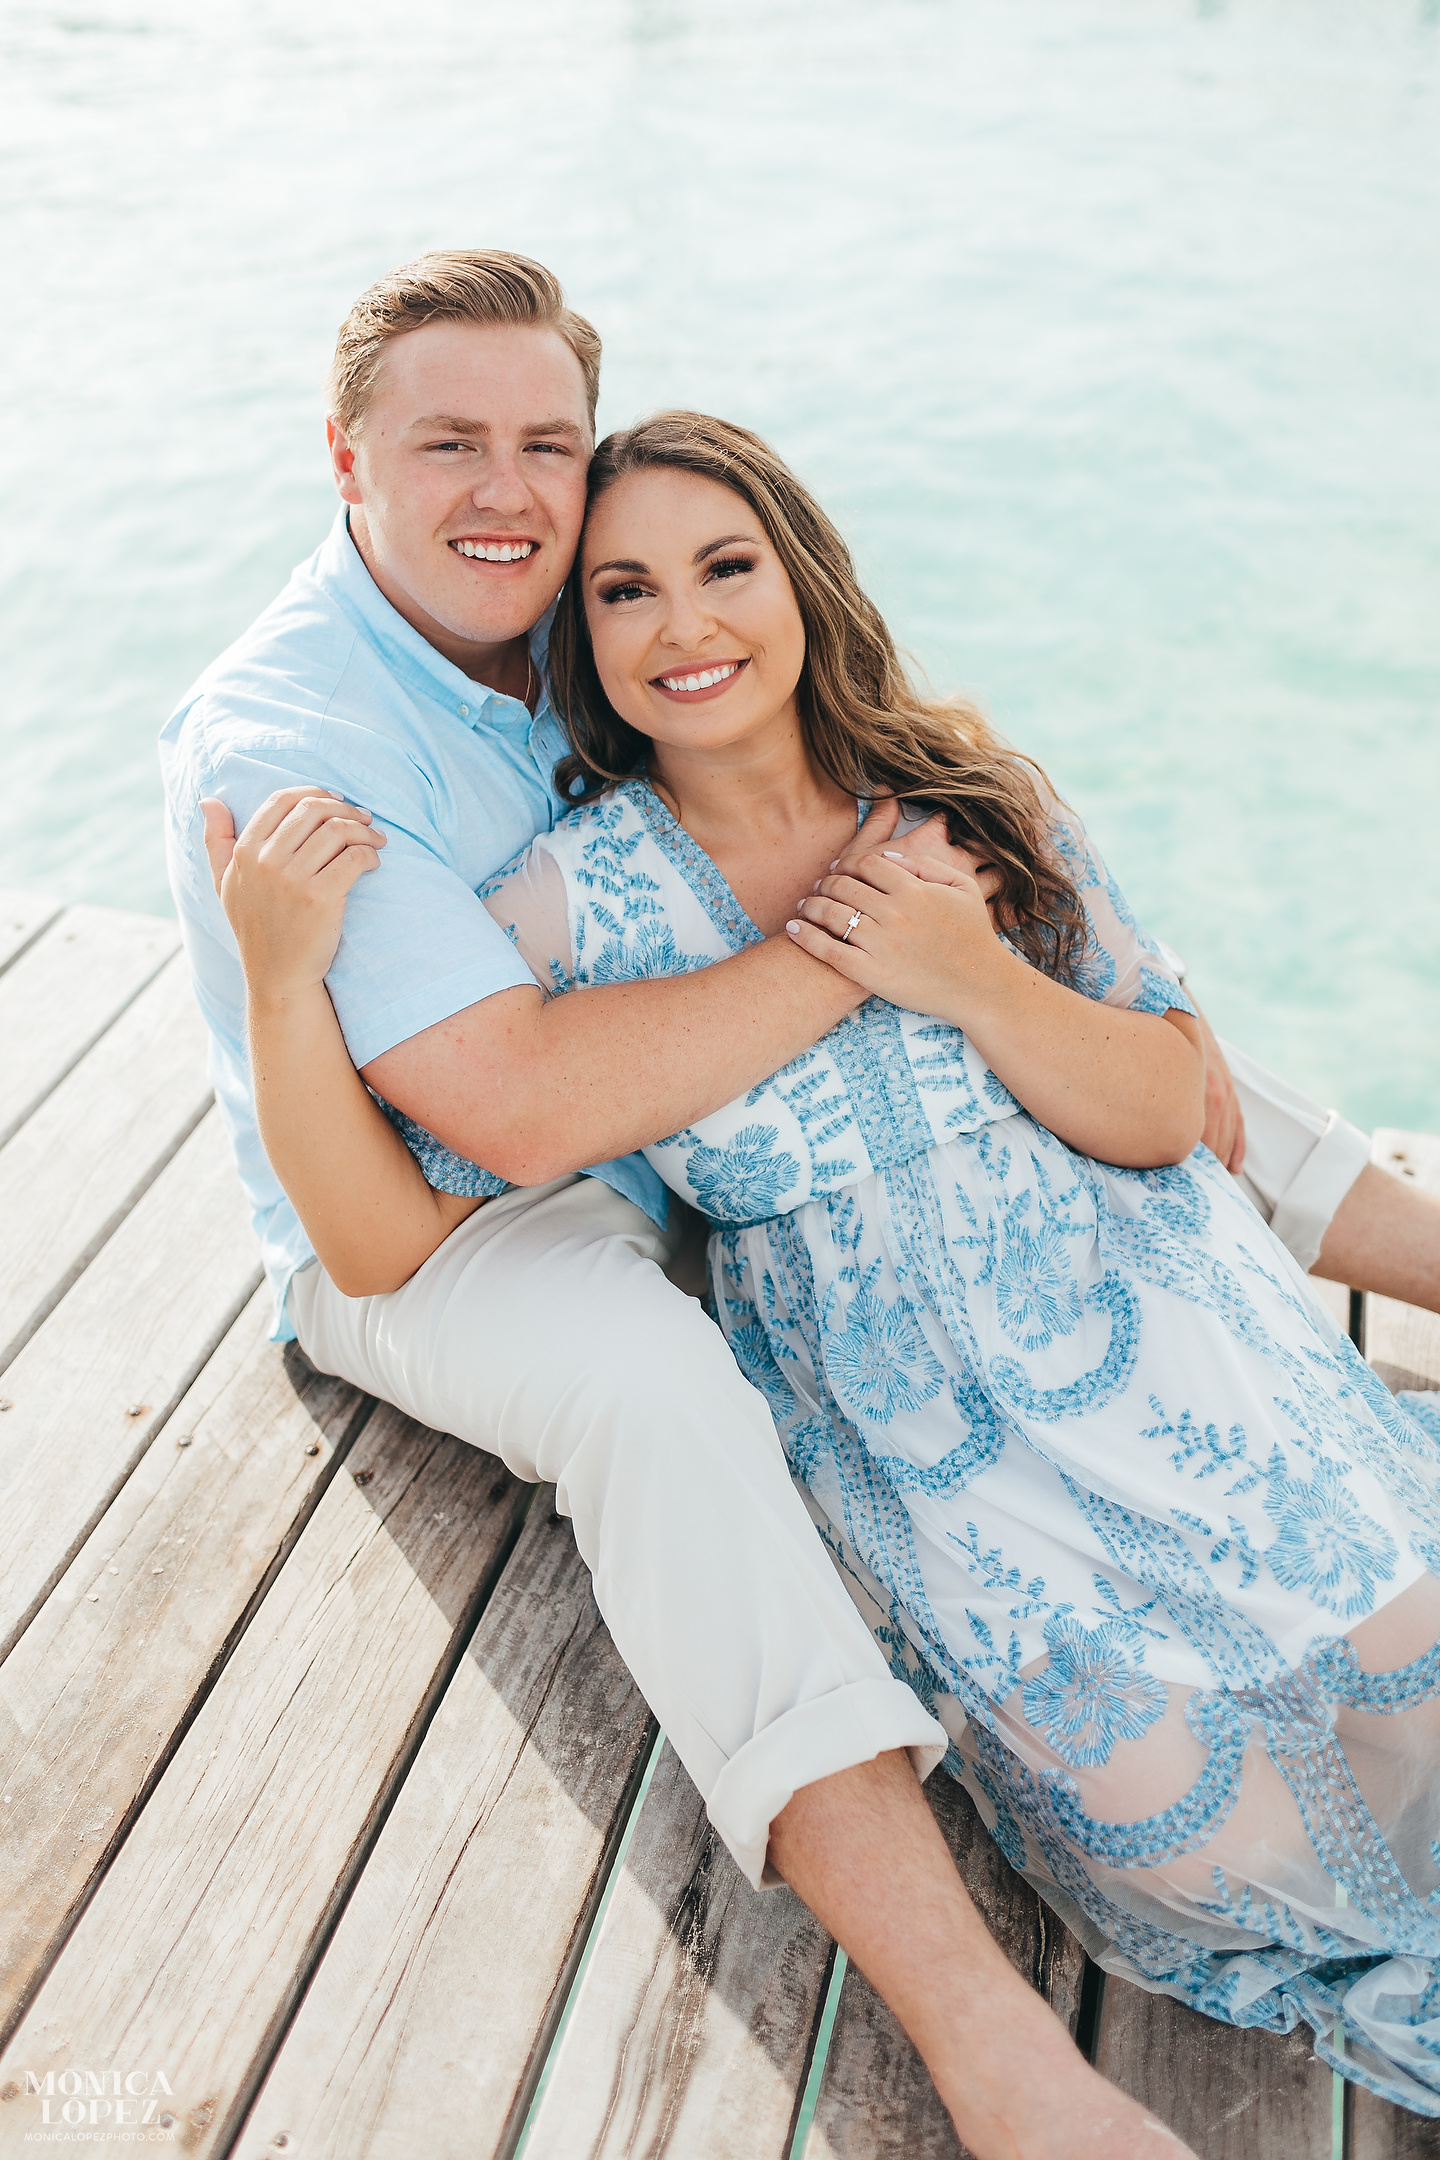 Isla Mujeres Engagement Portraits, Quintana Roo, Mexico by Monica Lopez Photography